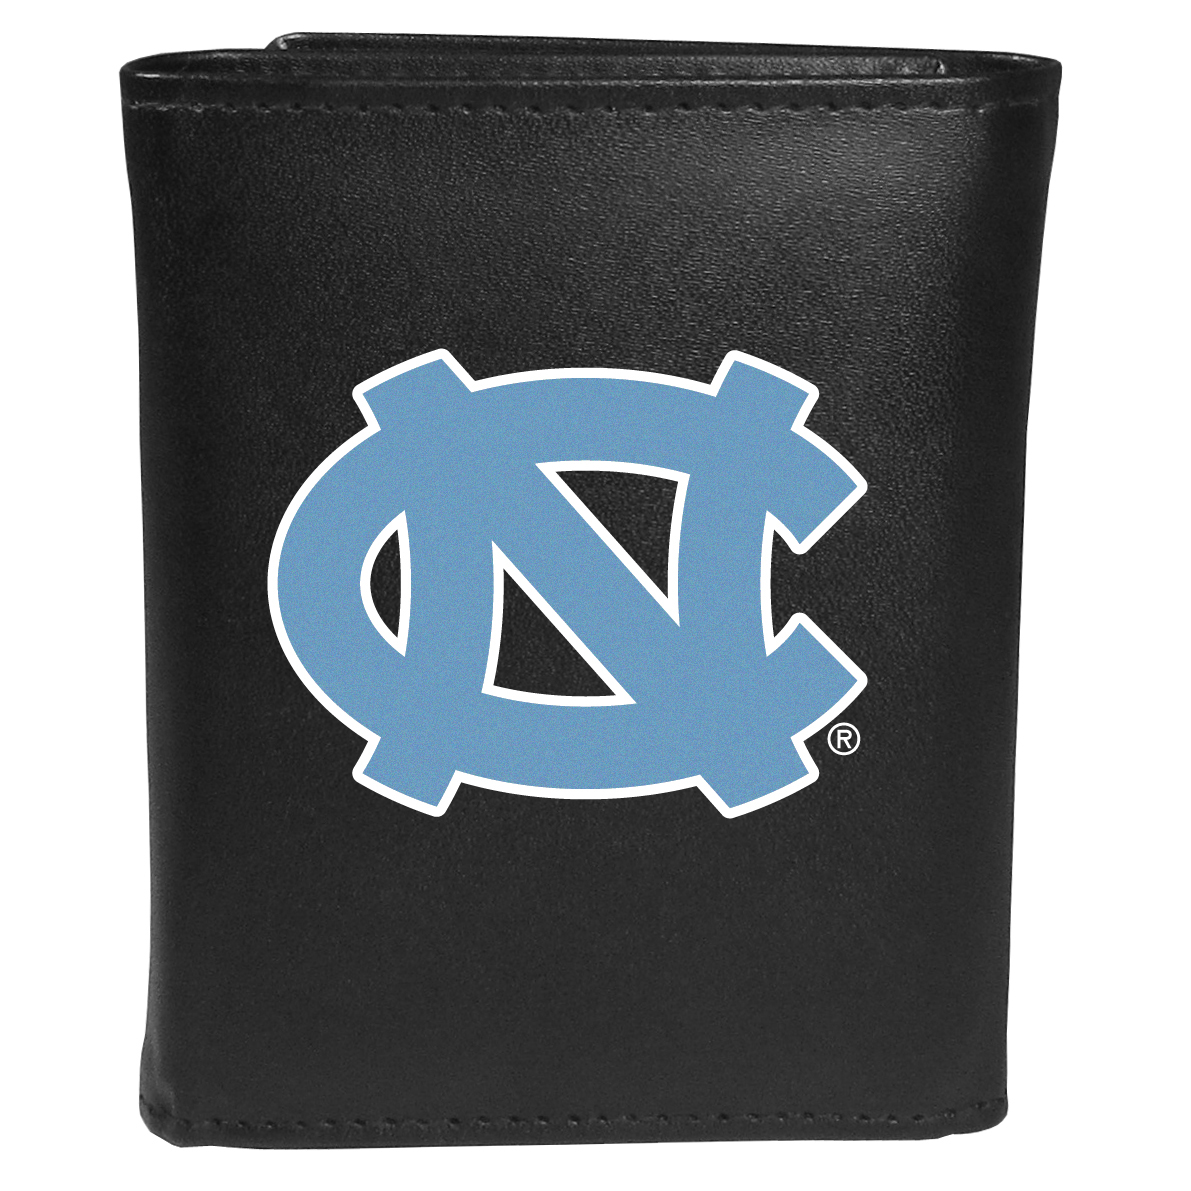 N. Carolina Tar Heels Tri-fold Wallet Large Logo - Sports fans do not have to sacrifice style with this classic tri-fold wallet that sports theN. Carolina Tar Heels?extra large logo. This men's fashion accessory has a leather grain look and expert craftmanship for a quality wallet at a great price. The wallet features inner credit card slots, windowed ID slot and a large billfold pocket. The front of the wallet features an extra large printed team logo.